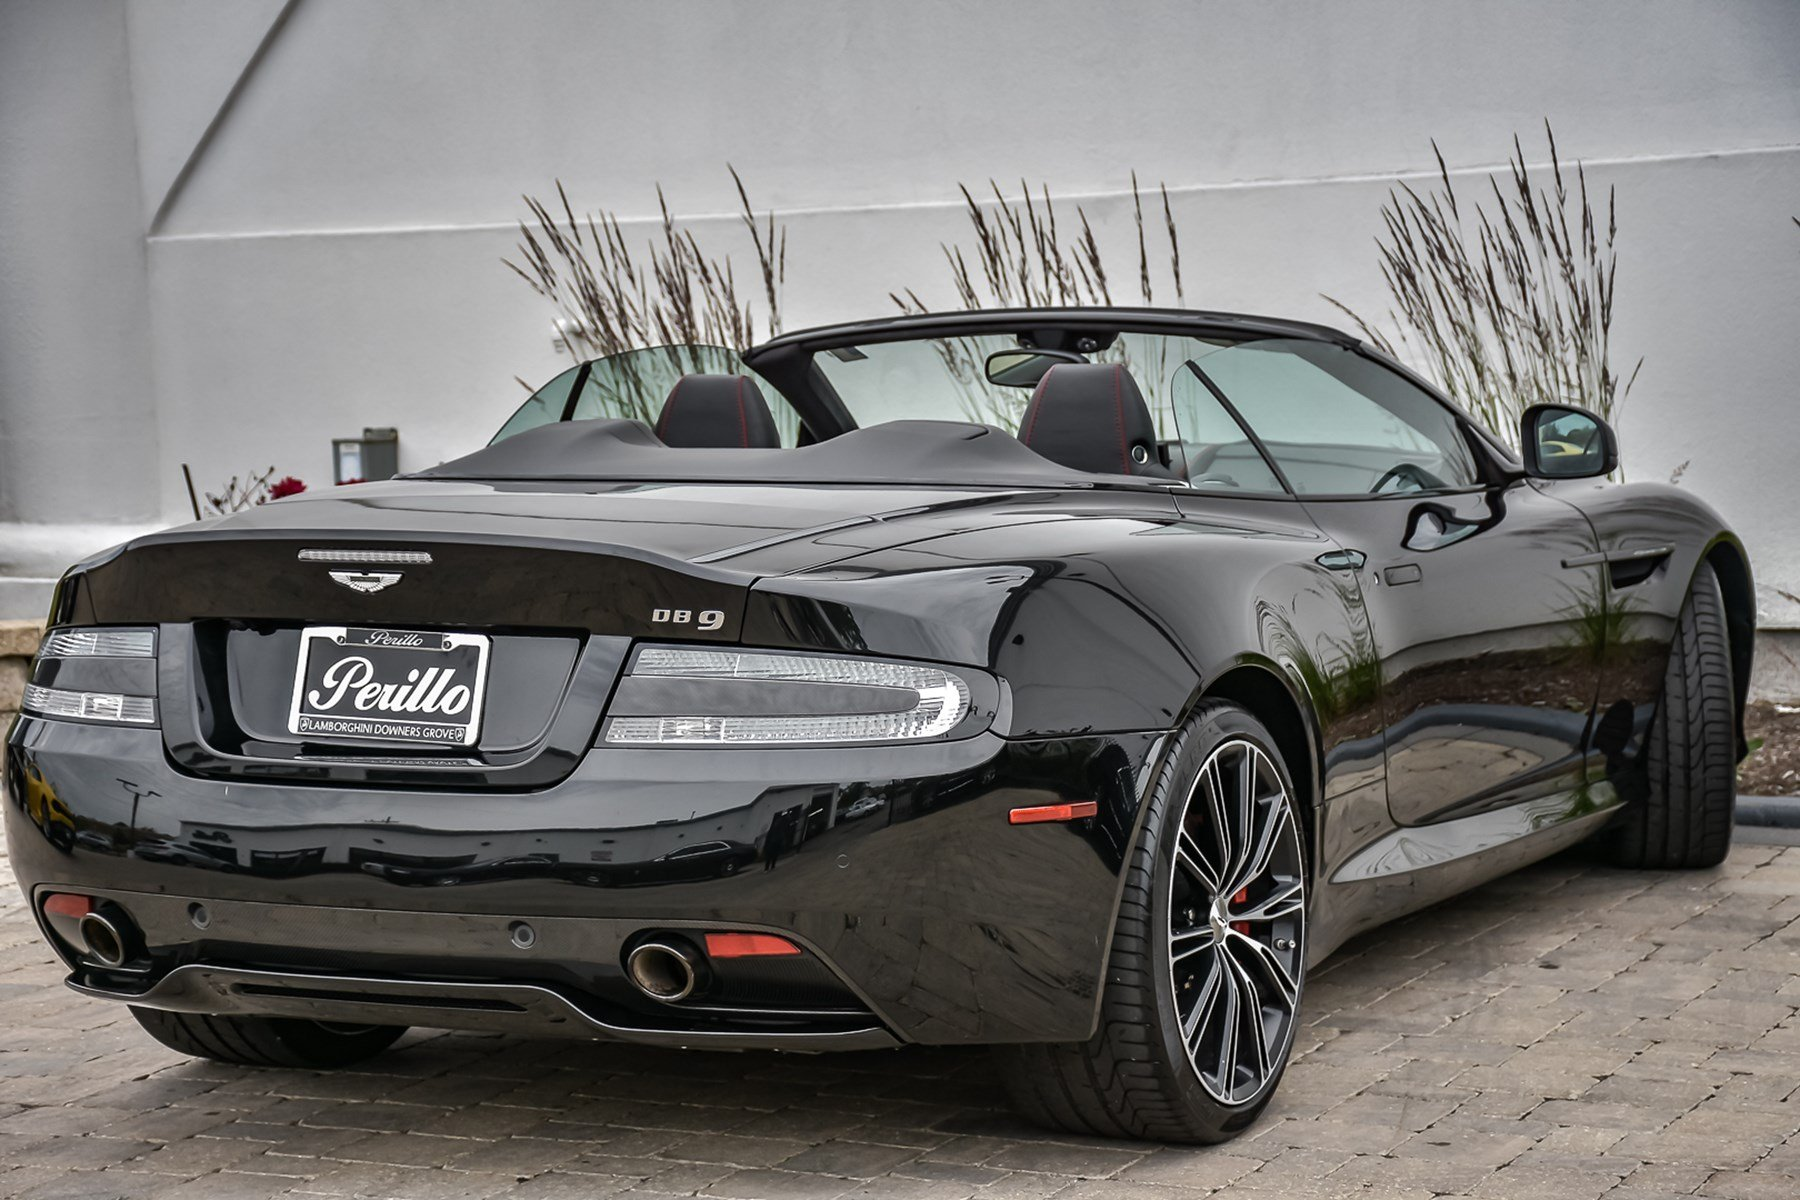 Pre-Owned 2015 Aston Martin DB9 Volante Carbon Edition With Navigation